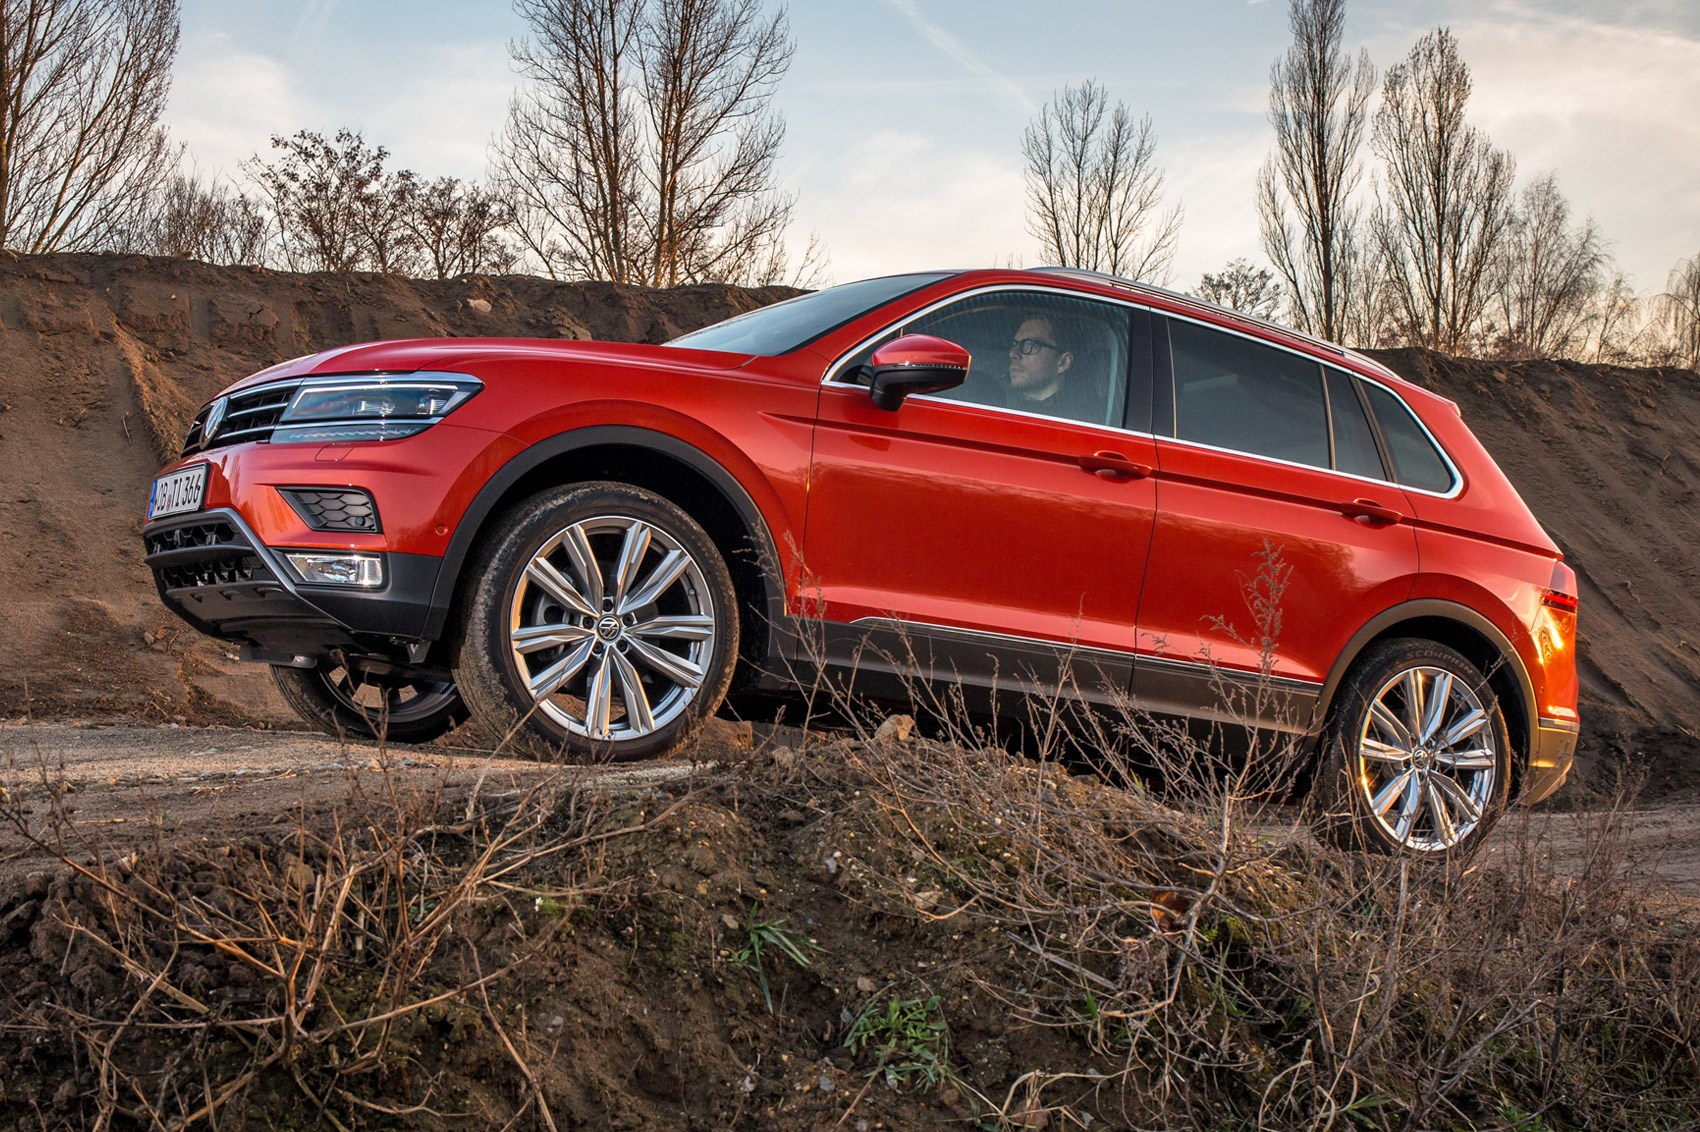 001tiguan Interesting Info About 2018 Vw Tiguan R Line with Mesmerizing Pictures Cars Review